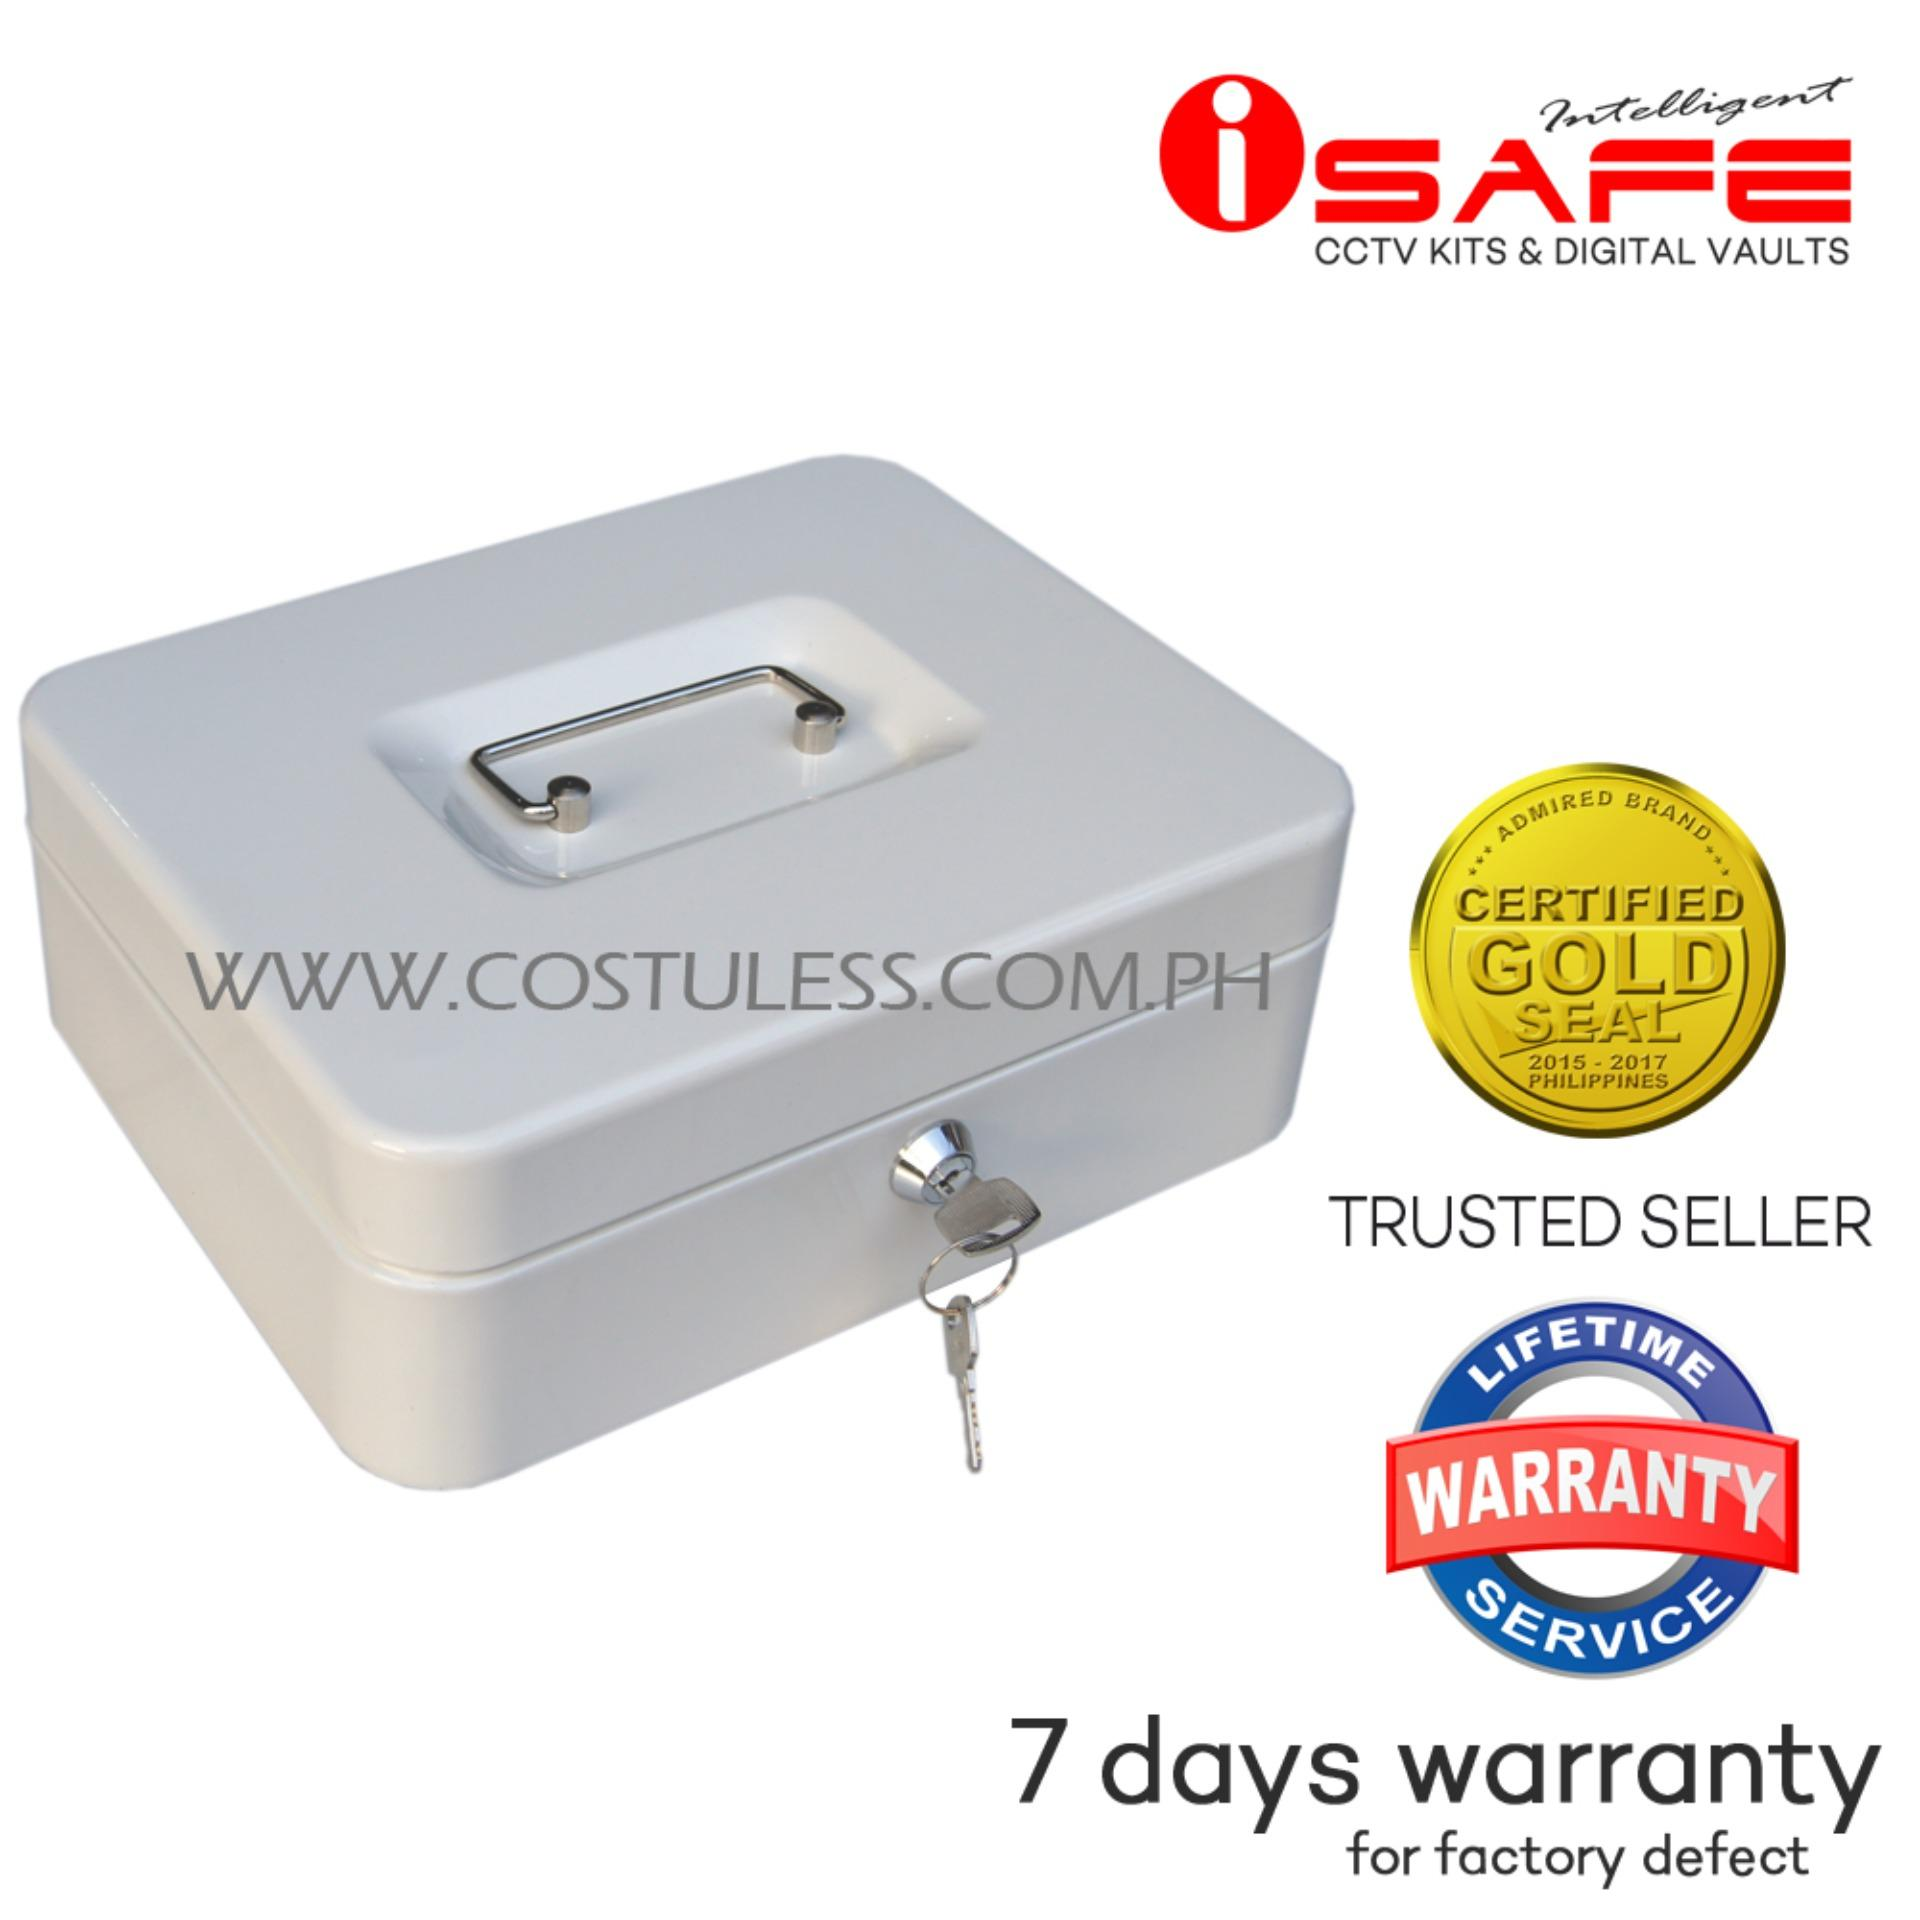 Shelf For Sale Home Shelves Prices Brands Review In Philippines National Pendant Wiring Kithwc0545 The Depot Isafe Cb M Medium Steel Cash Box Beige